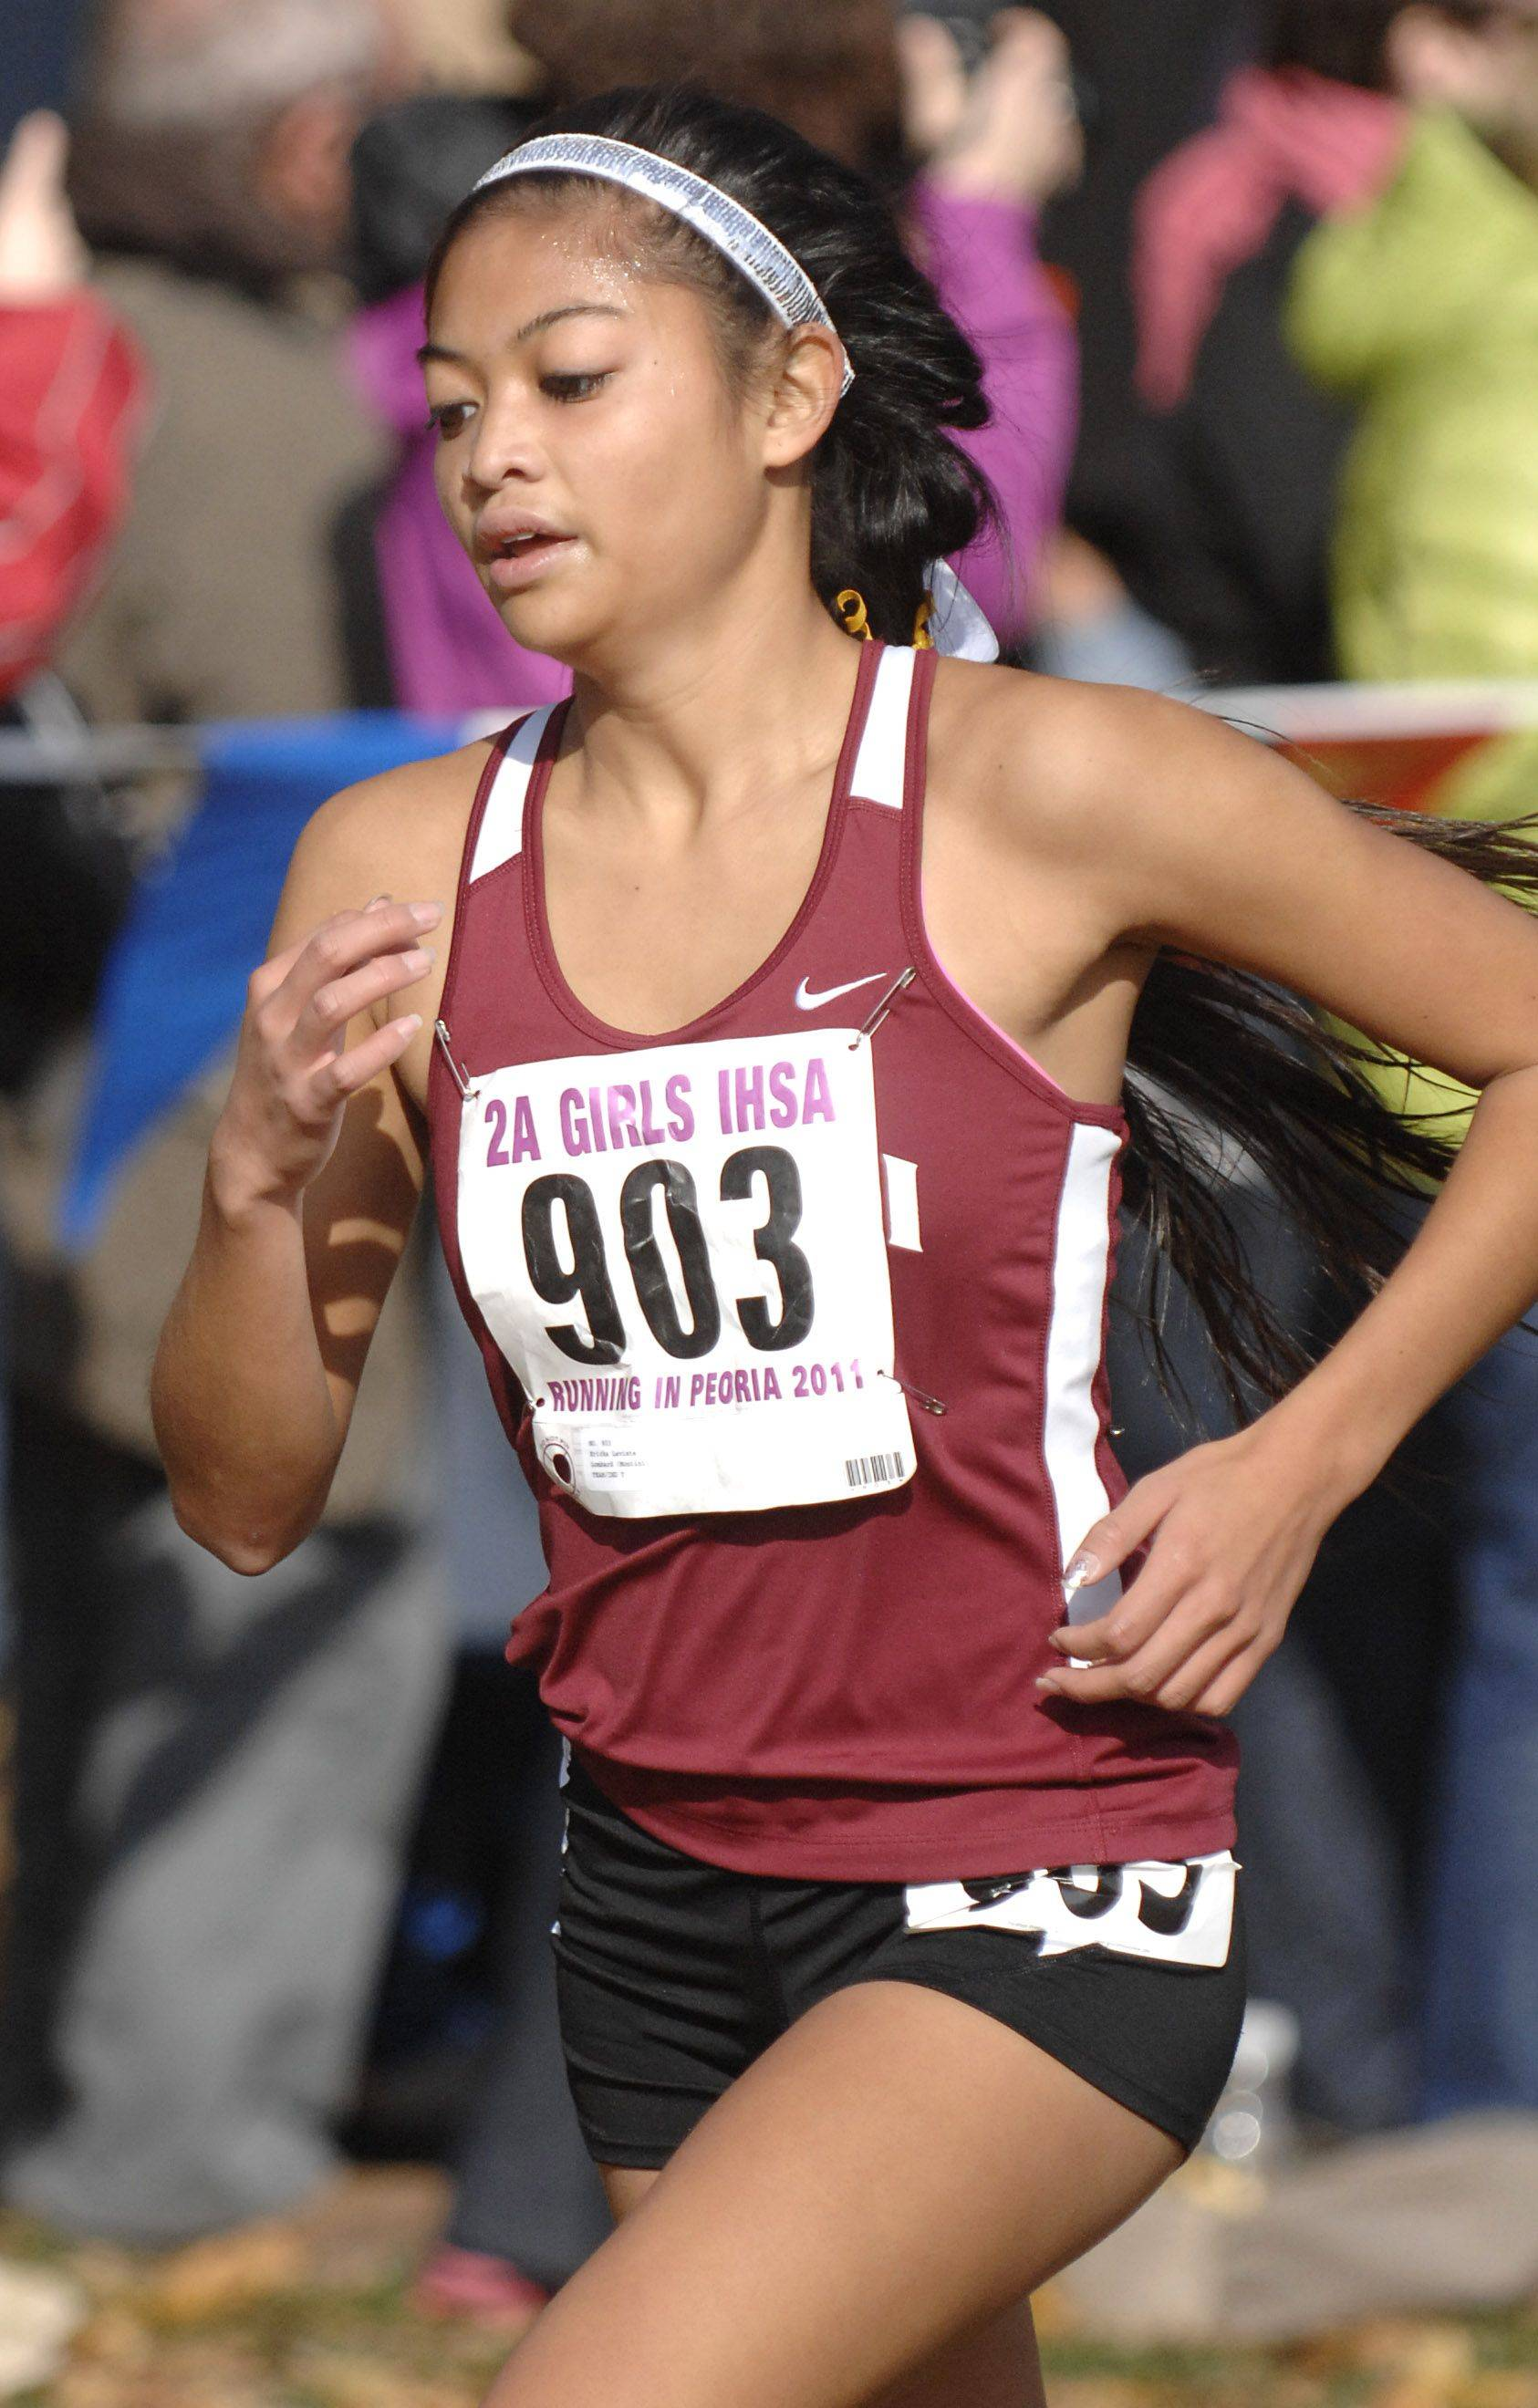 Montini's Ericka Laviste took 5th place with a time of 17:25 in the 2A state cross country final.